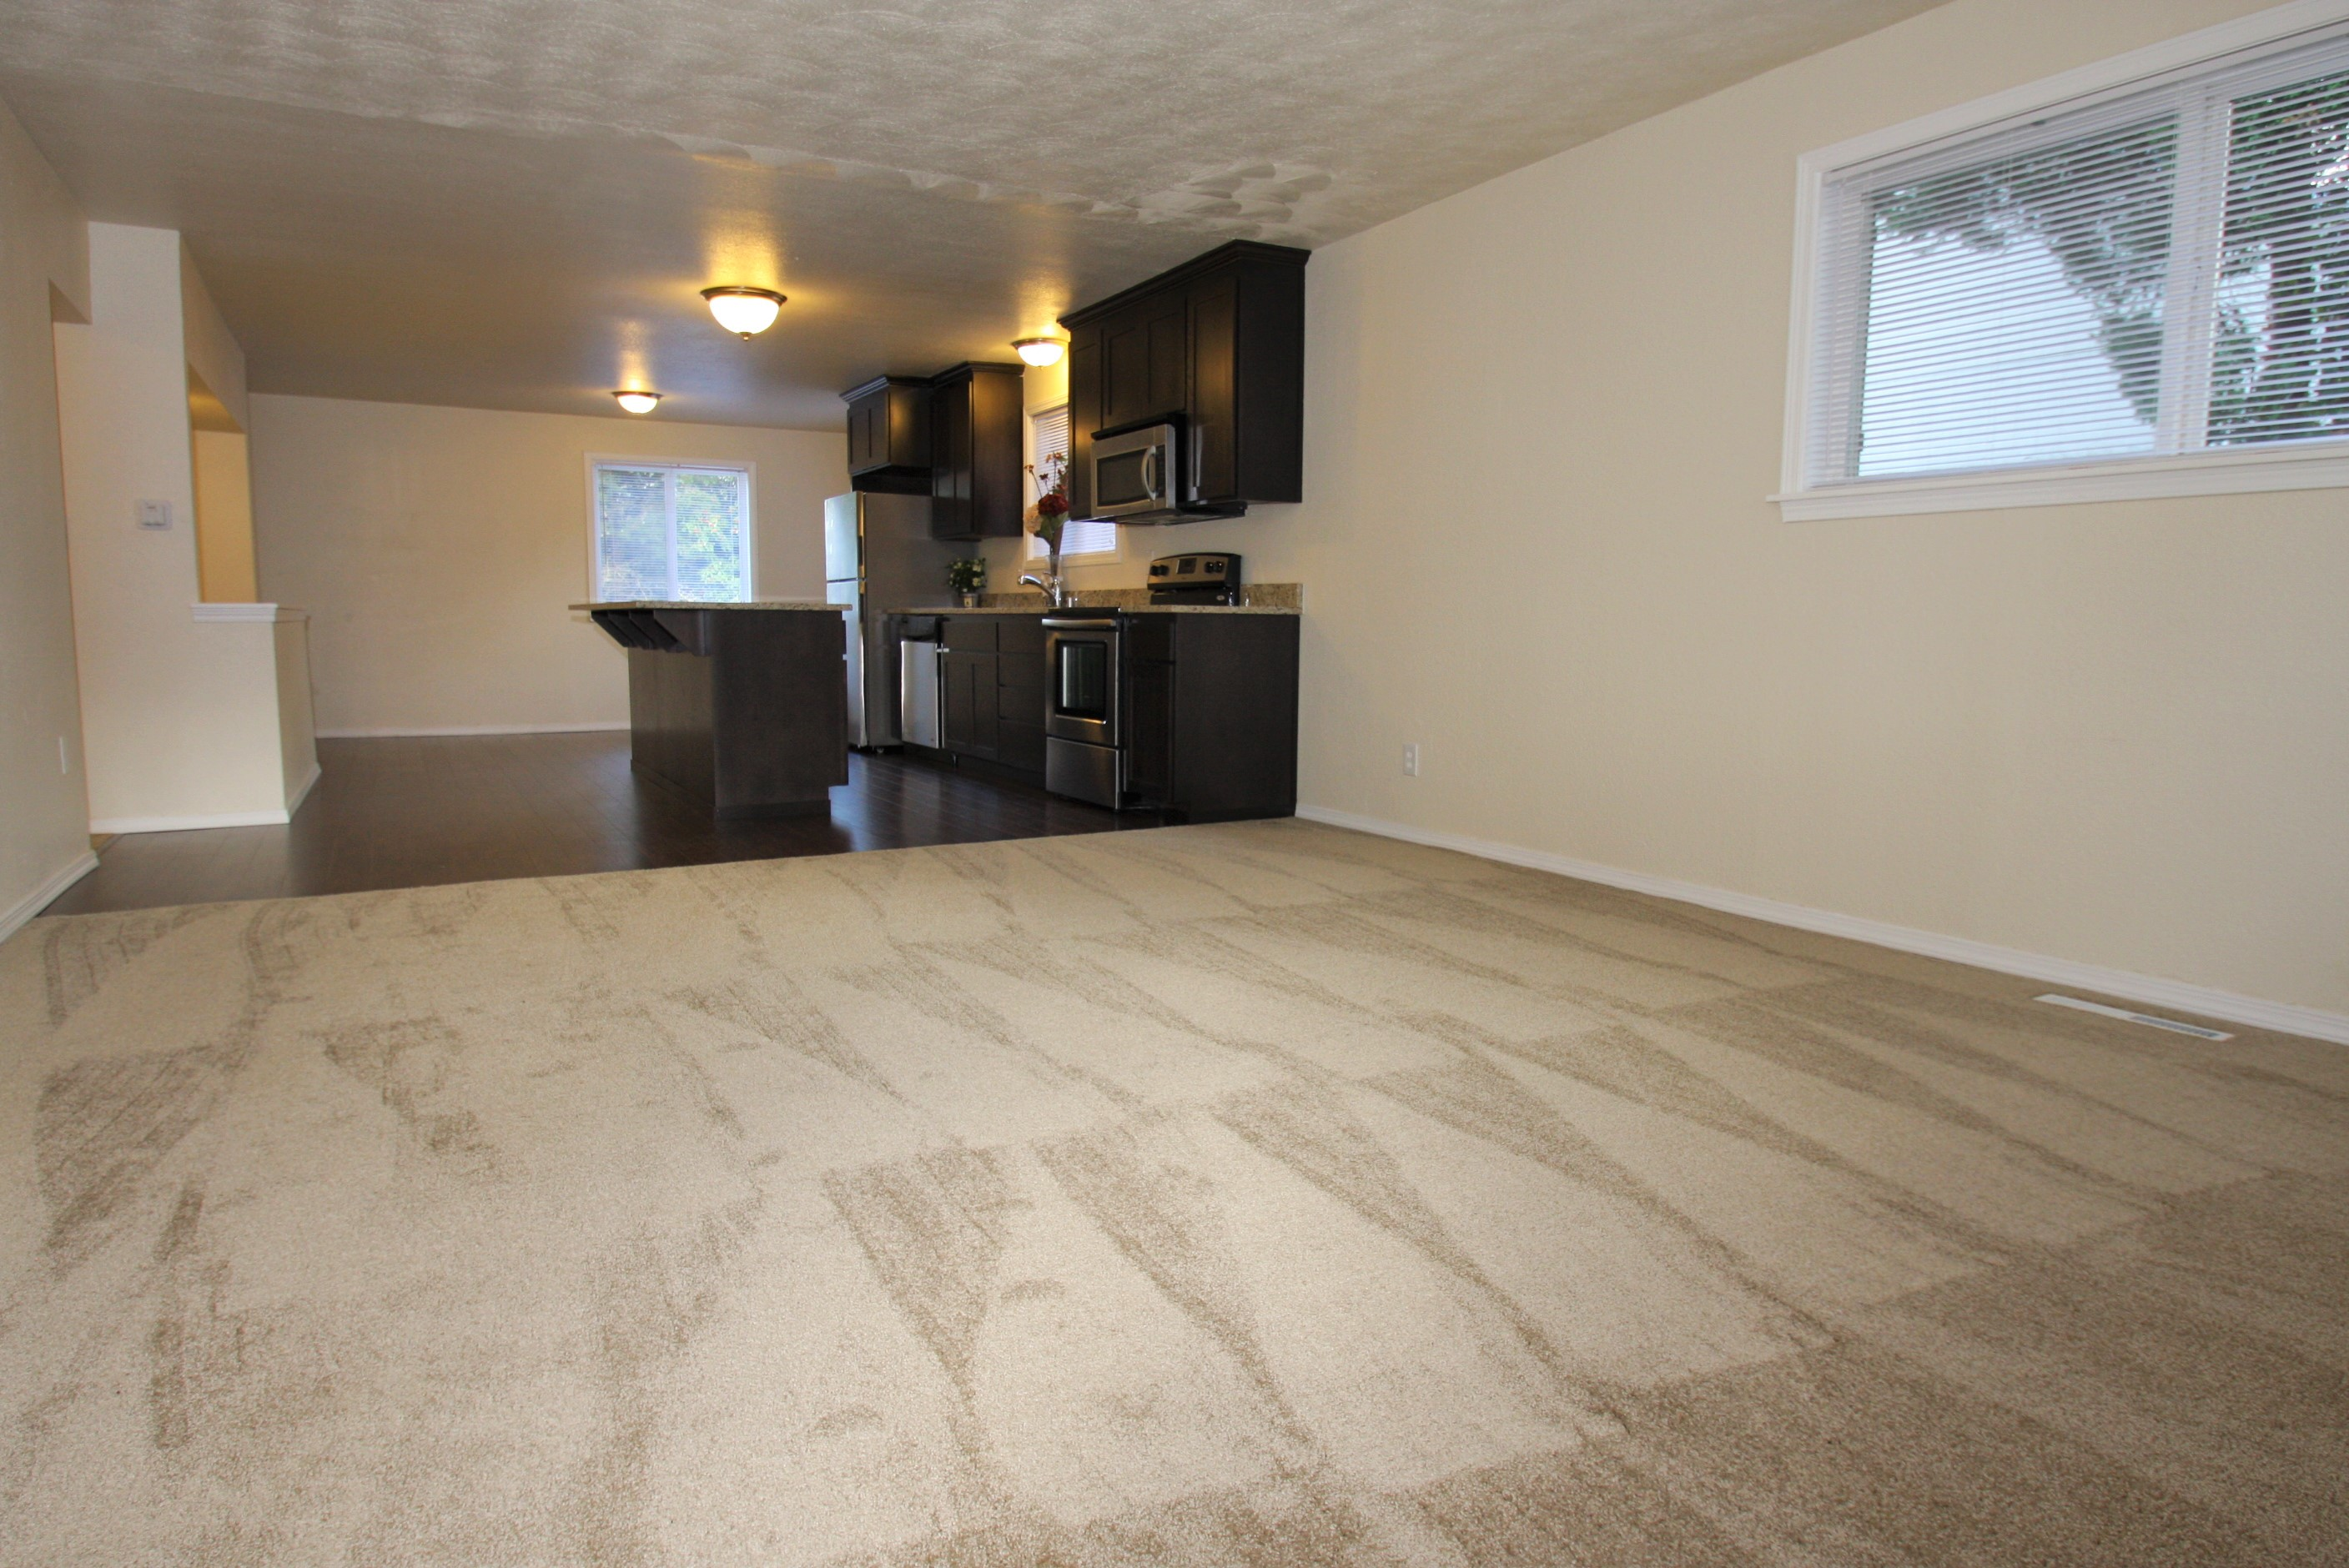 Engineered Hardwood Basement Part - 39: Easy To Maintain Engineered Hardwood Floors Are Thoughout The Kitchen And  Fresh Interior Paint, All You Need To Do Is Move In And Enjoy!